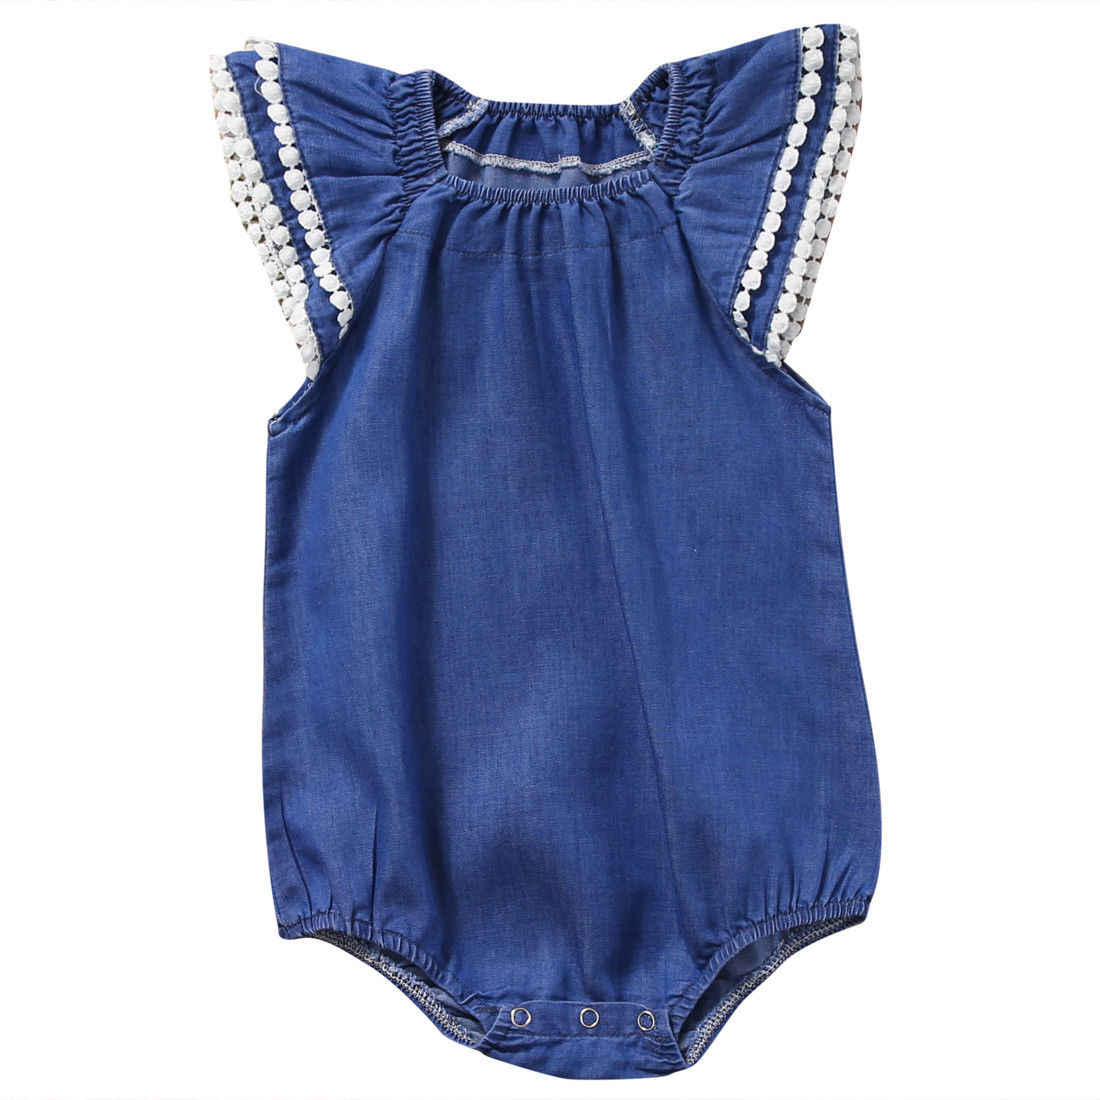 Baby Girl Romper Denim Romper Ruffles Sleeves Solid Blue Newborn Baby Rompers Toddler Kids Jumpsuit Outfits Sunsuit 2017 floral newborn baby girl clothes ruffles romper baby bodysuit headband 2pcs outfits sunsuit children set